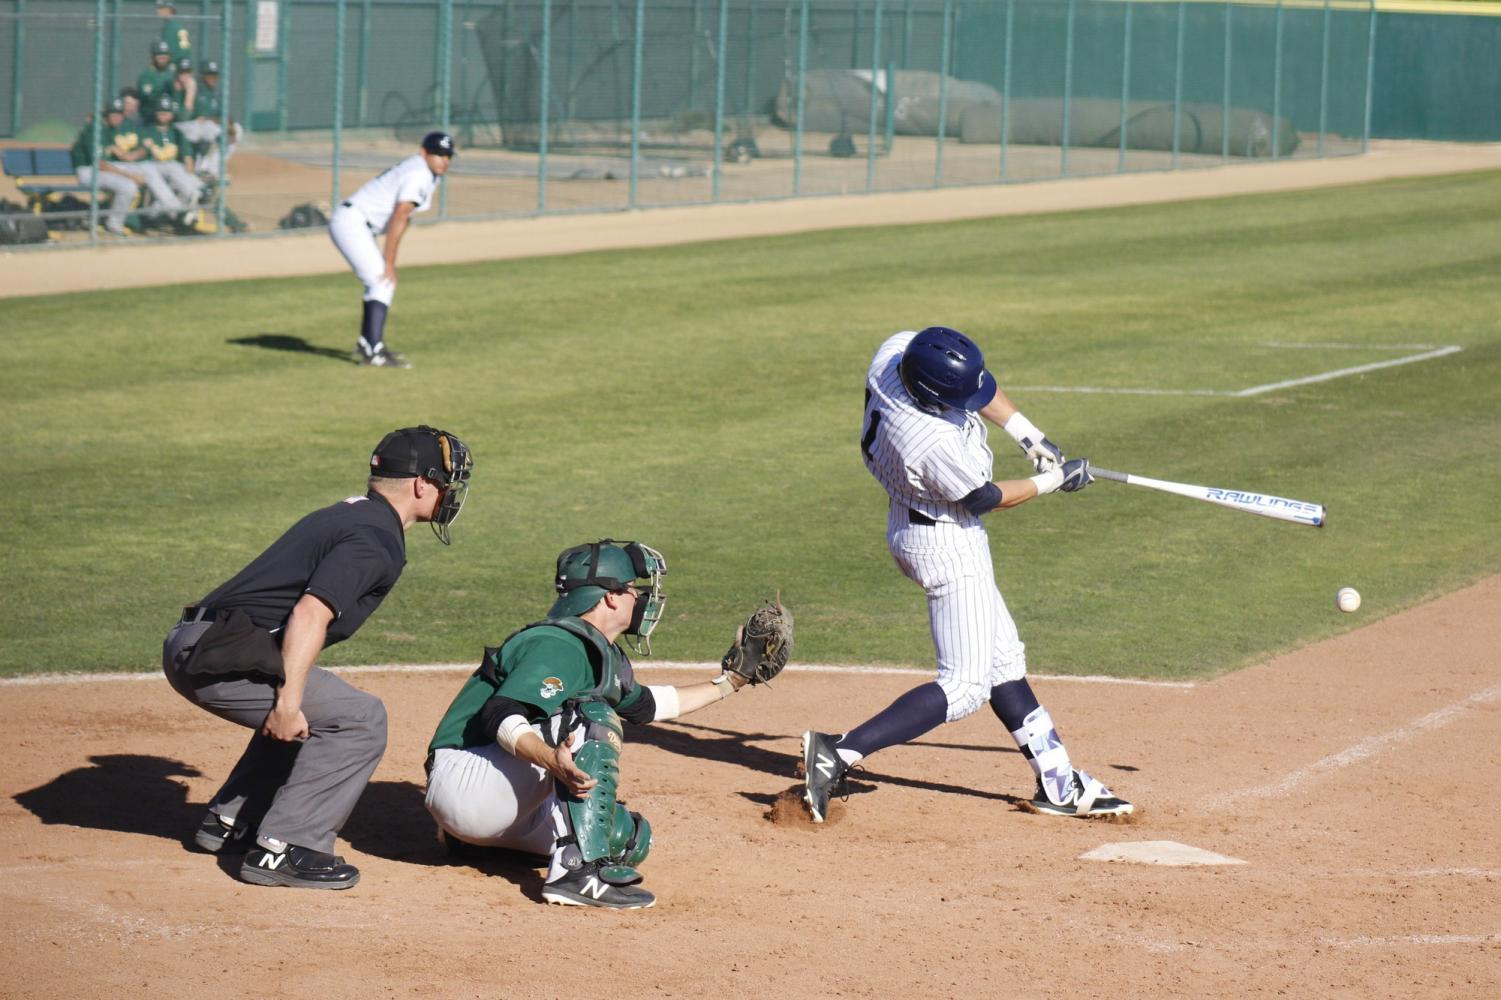 Sophomore center fielder Nick Penzetta was at bat four times. Penzetta had one RBI this game.